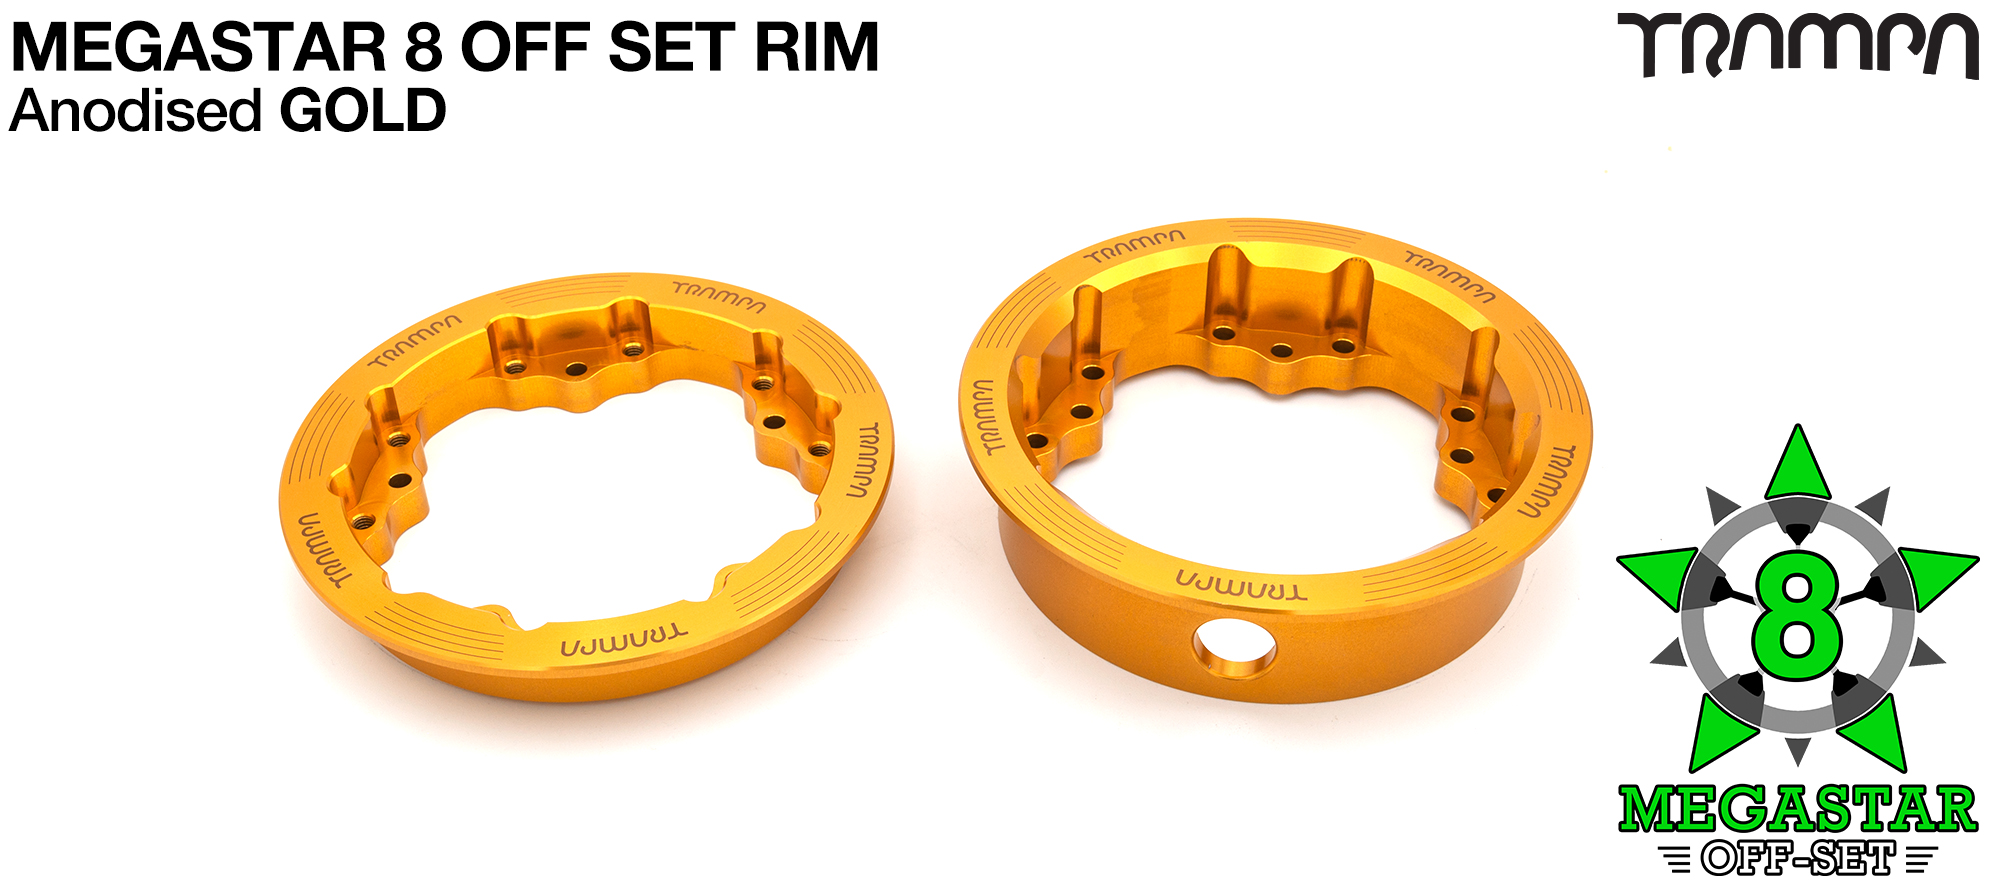 8 Inch MEGASTAR Rim OFF SET - Anodised GOLD - Pro OFF-SET Superstars will widen your wheel base by 15mm